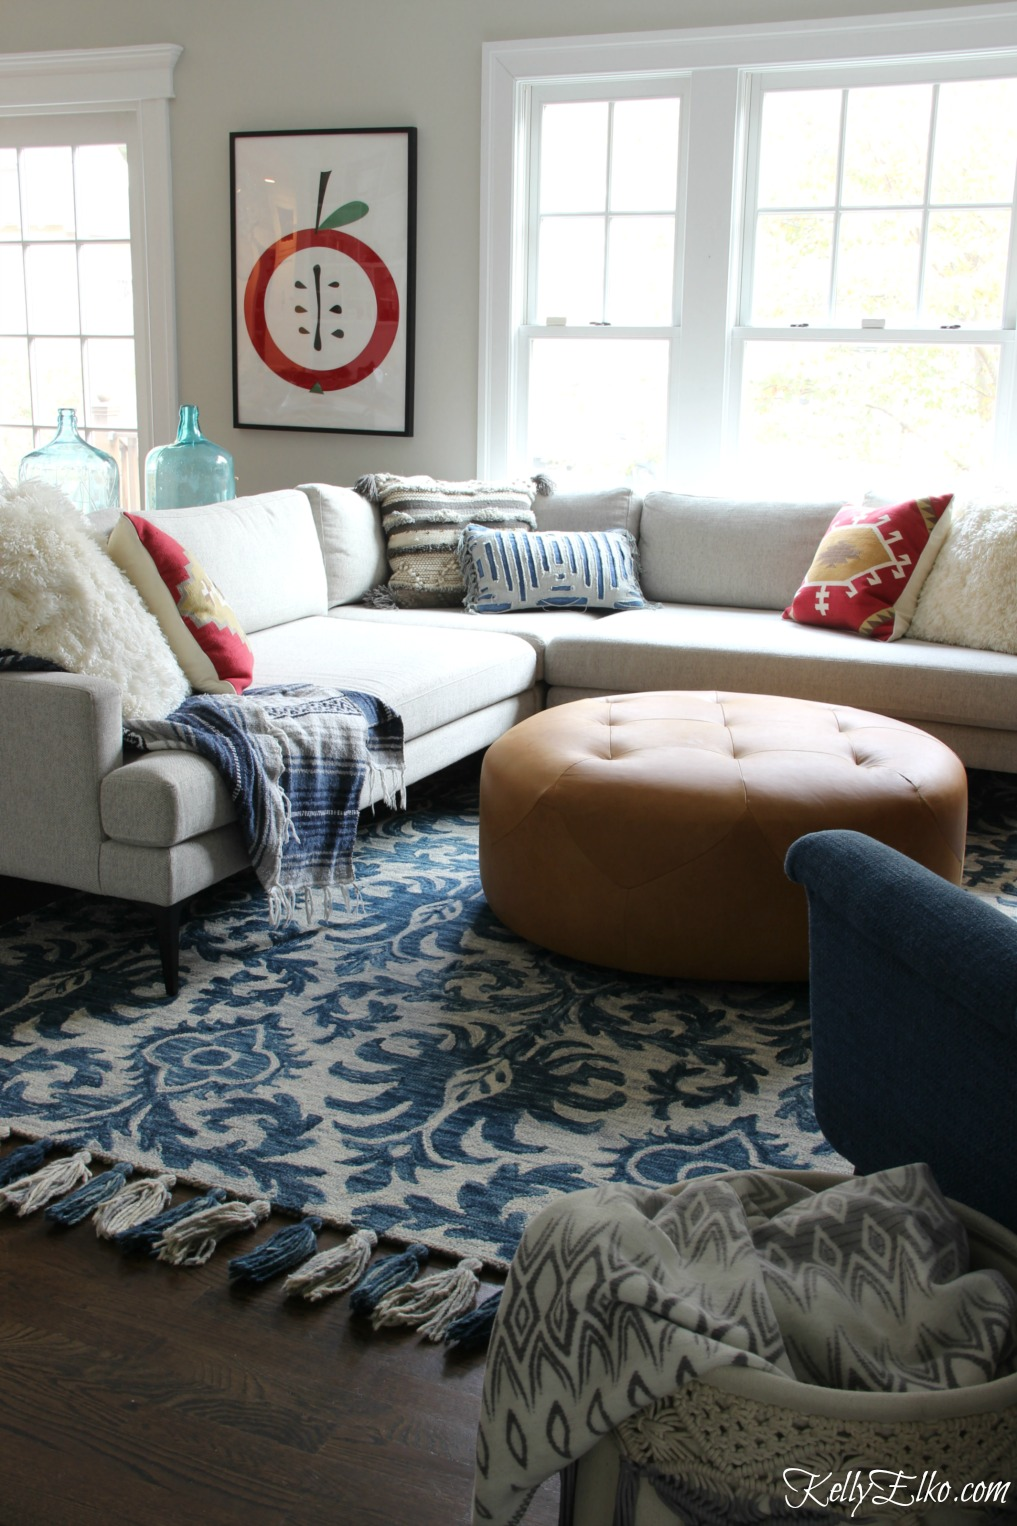 Cozy family room with sectional sofa, leather ottoman and blue tassel rug kellyelko.com